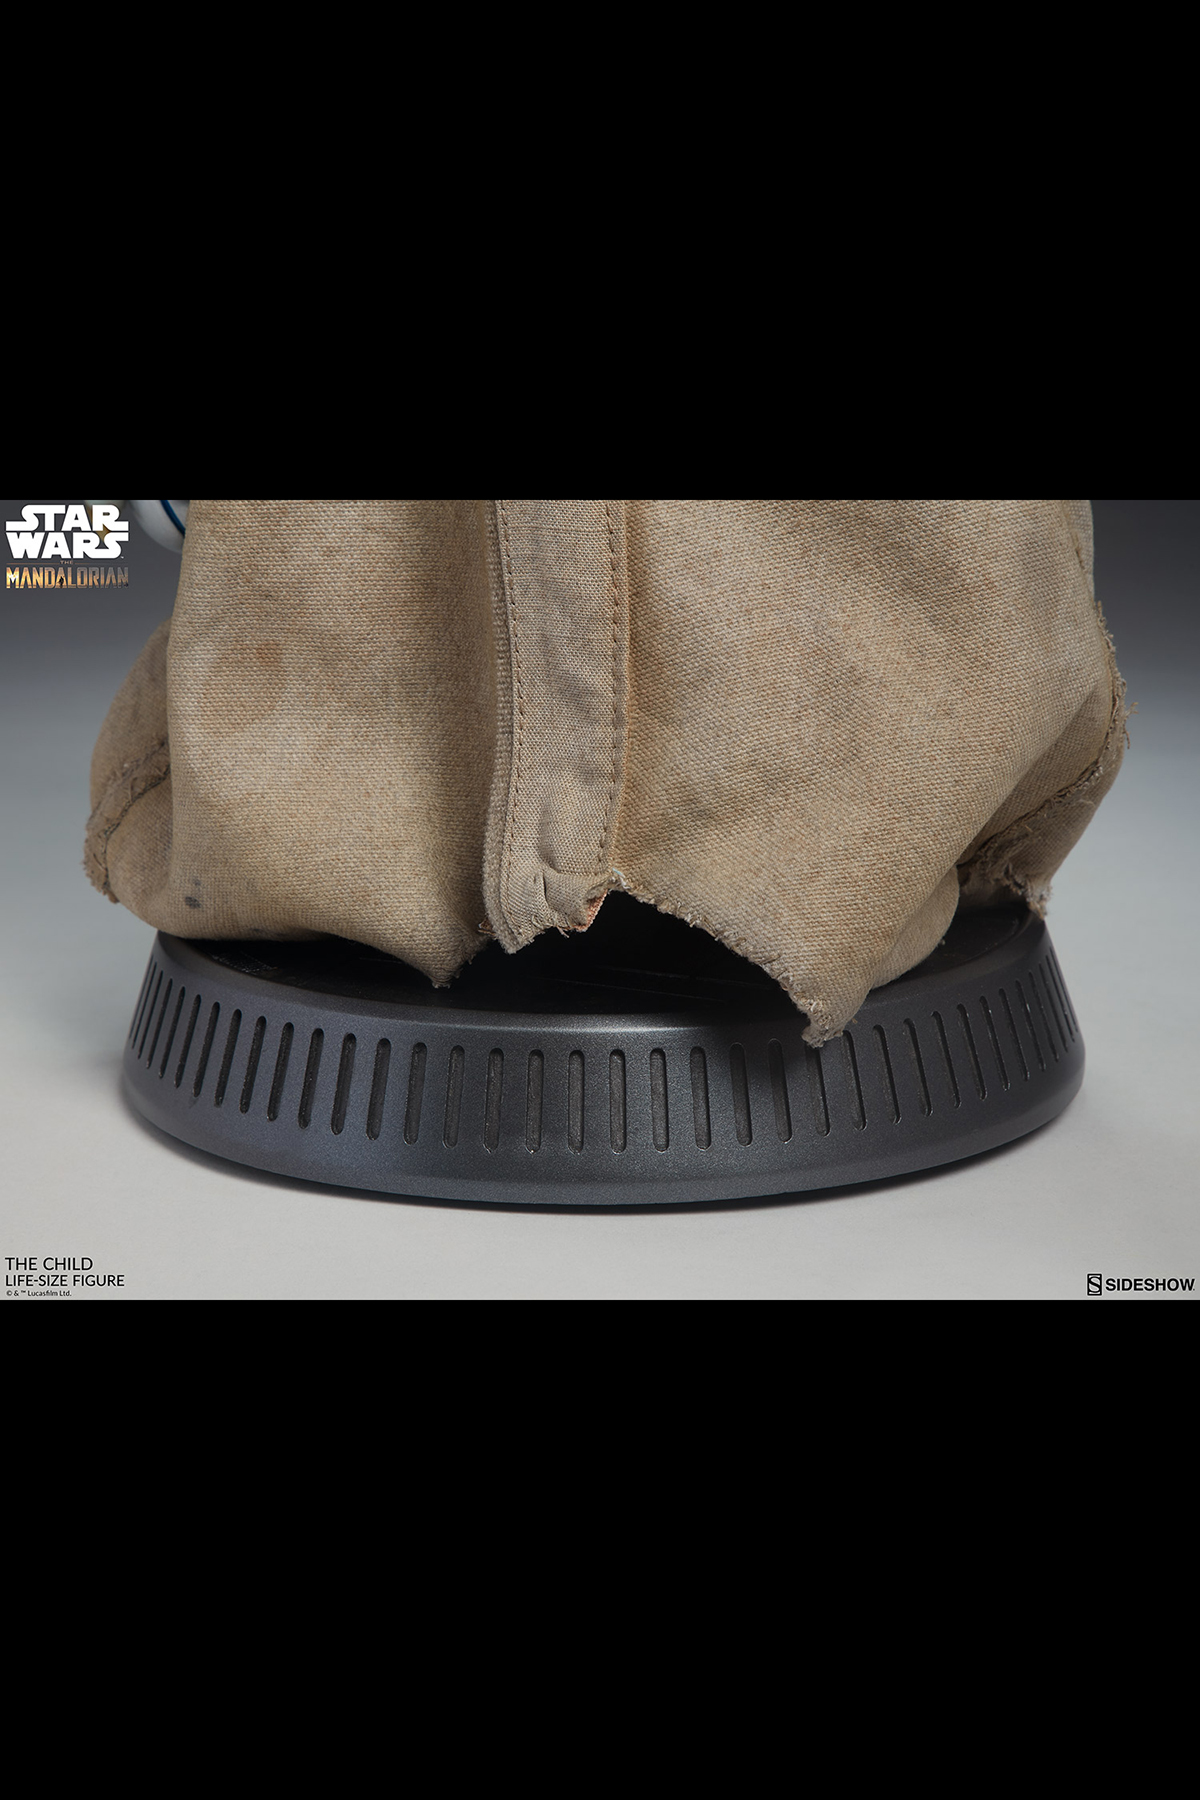 the-child_star-wars_gallery_5e3204d14161a